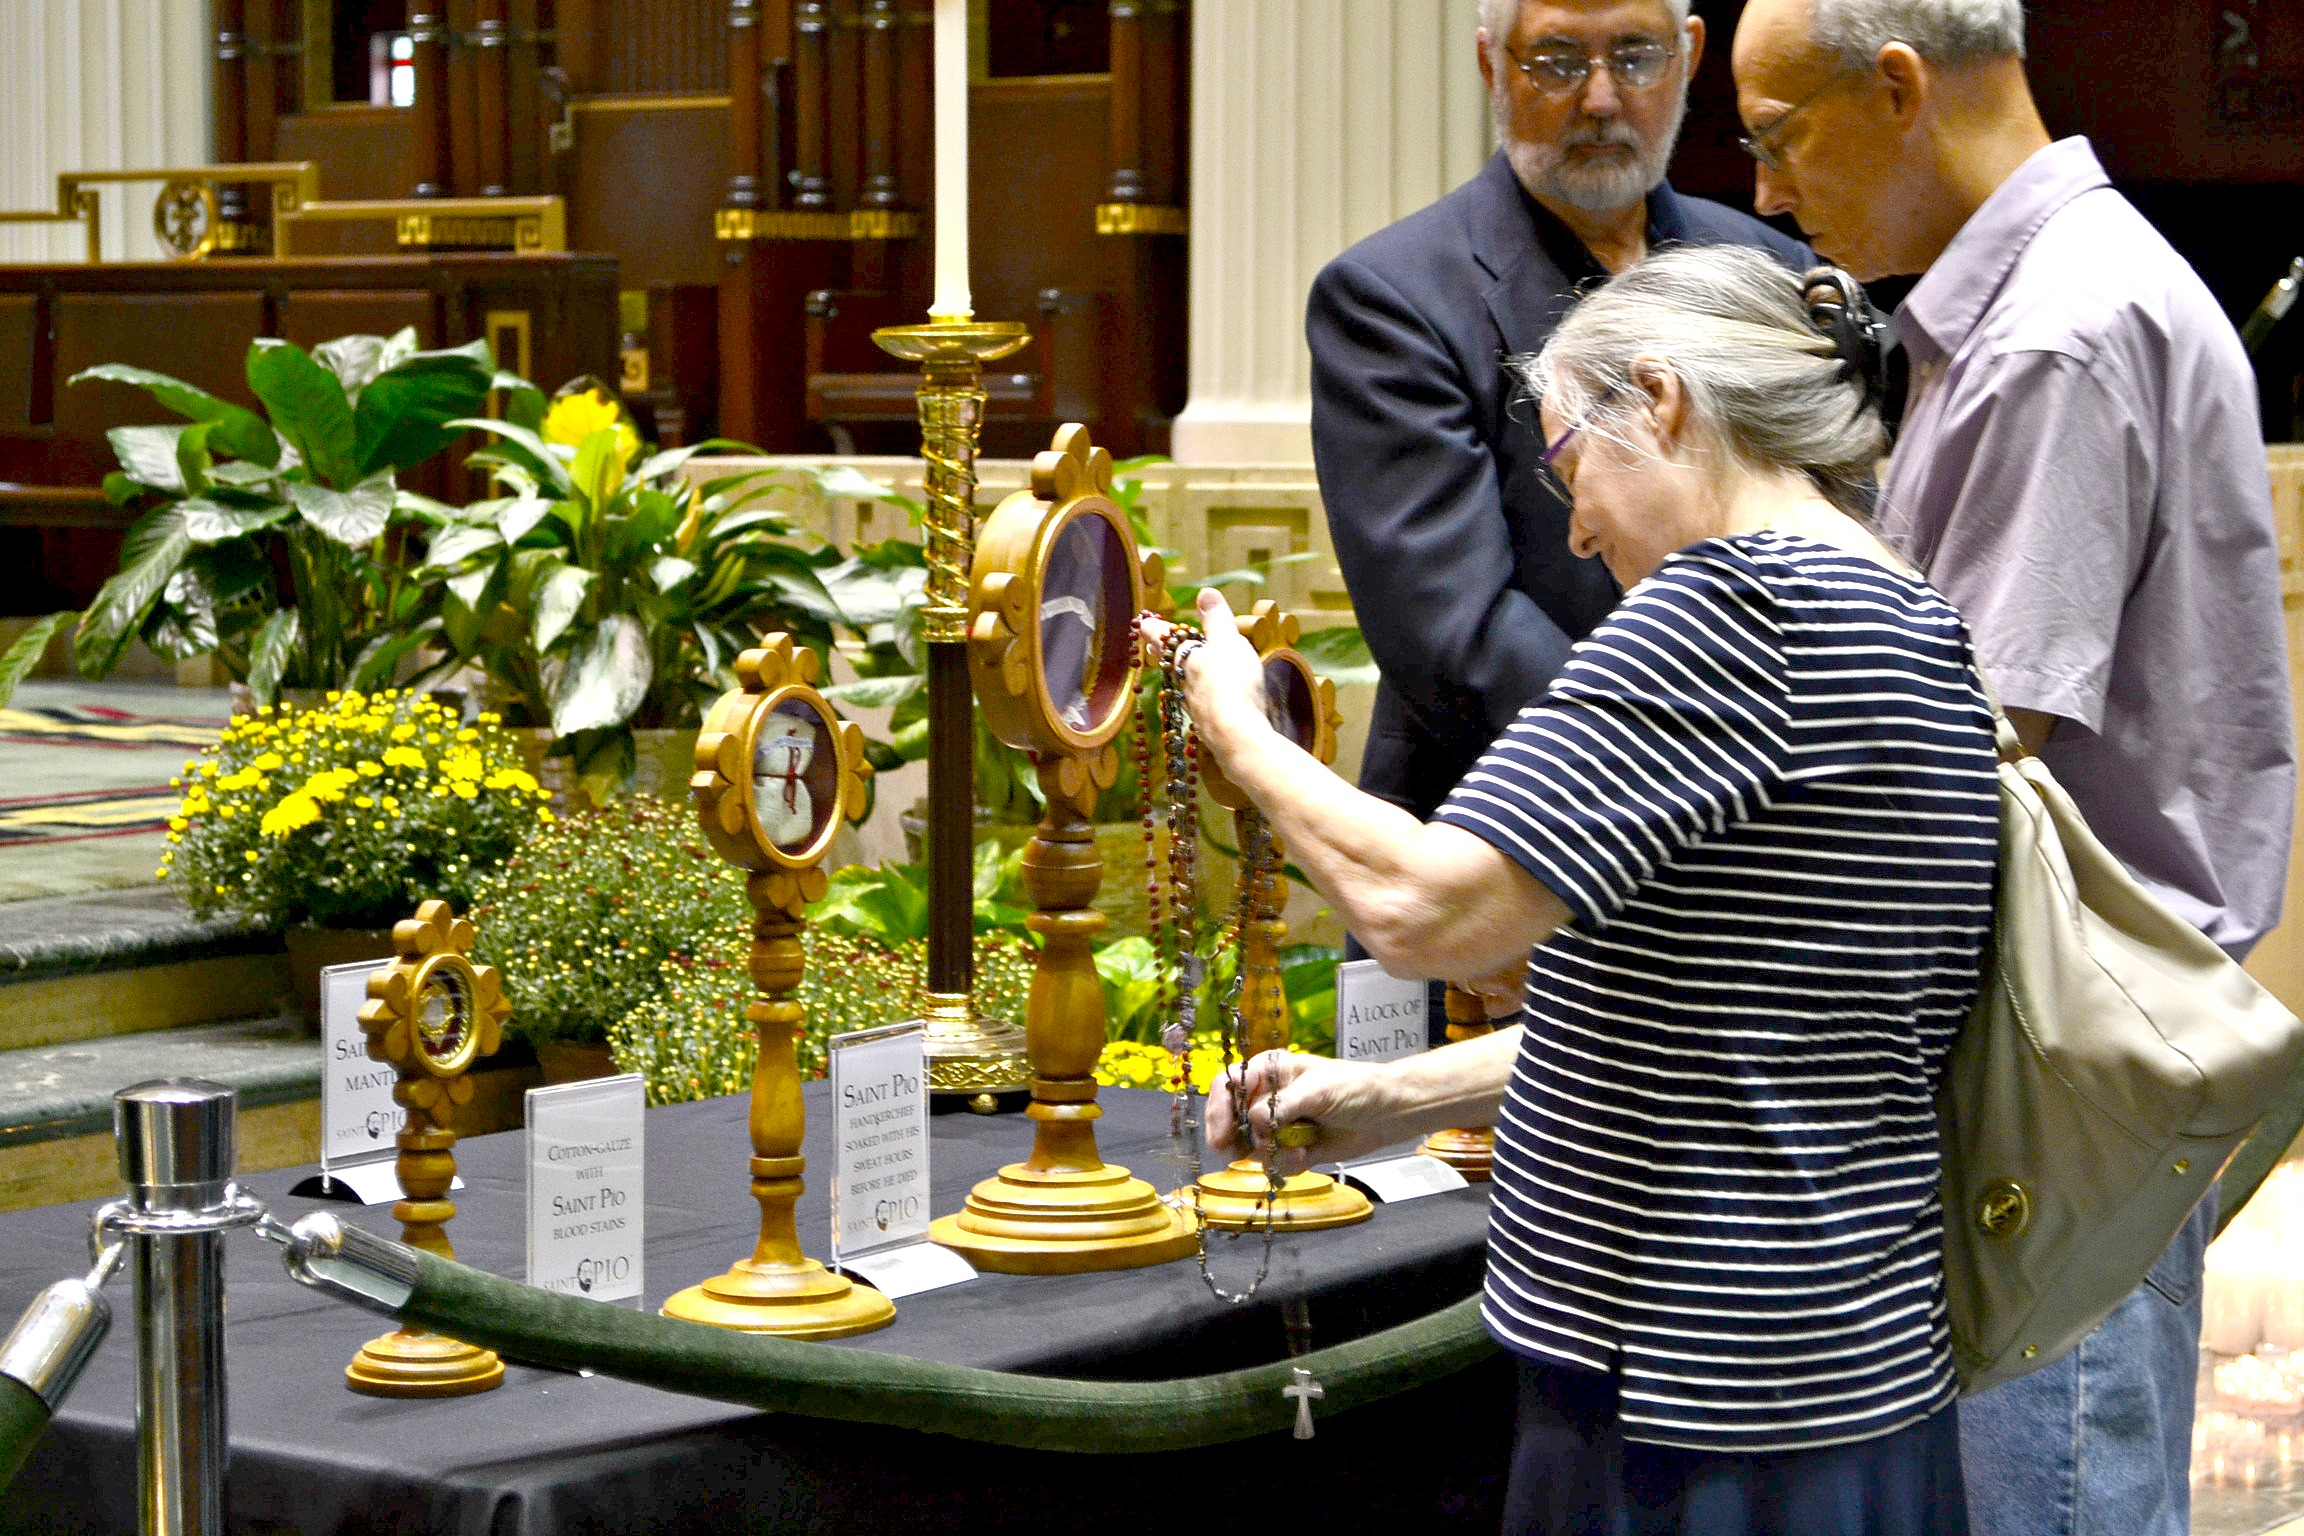 Many waited over an hour to venerate the sacred relics. (CT Photo/Greg Hartman)